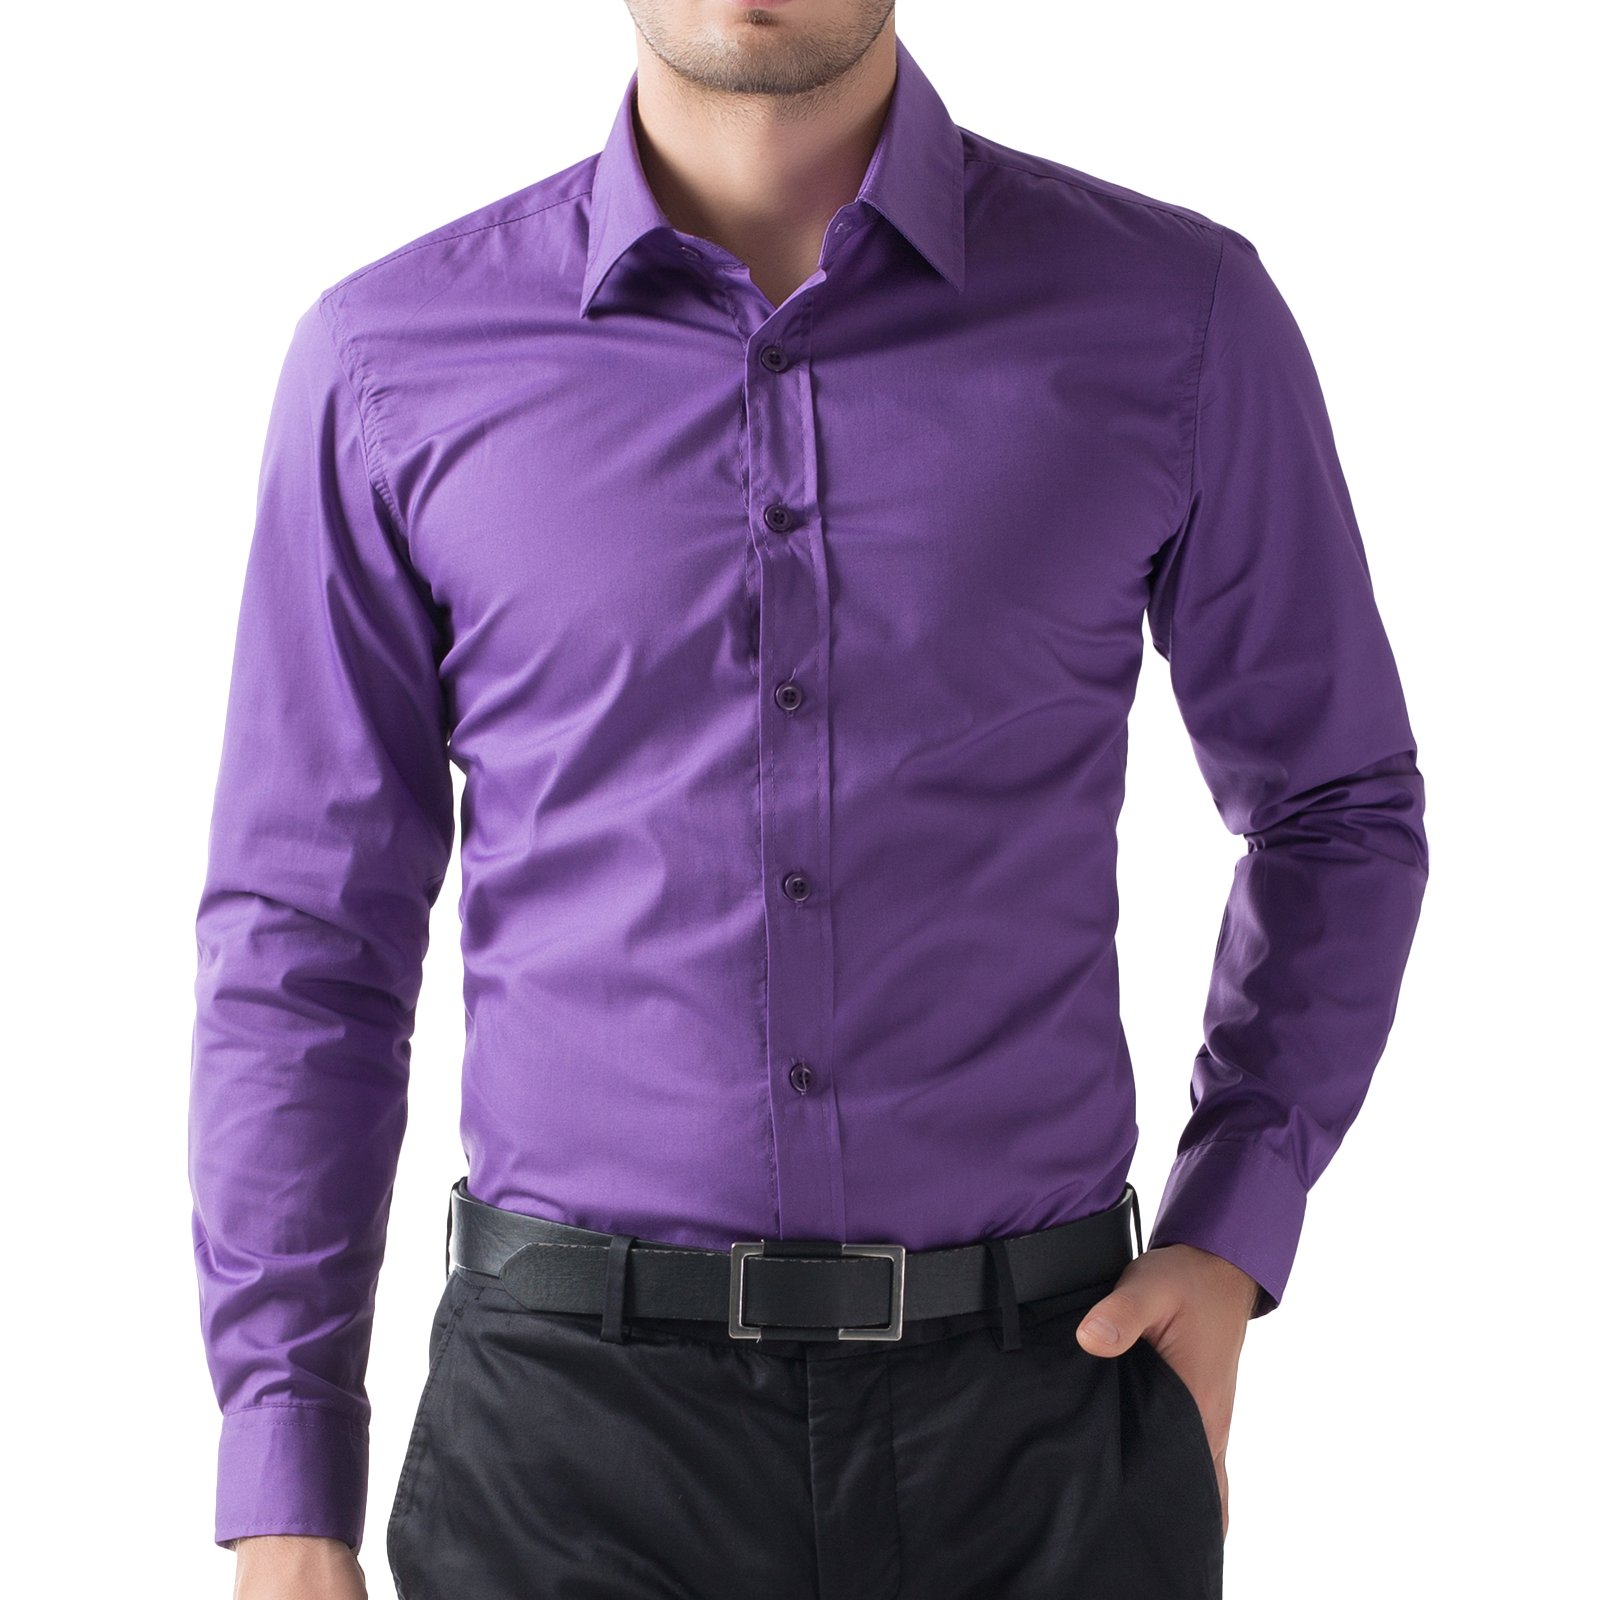 Paul Jones Mens Shirts Males Wedding Shirts For Engagement Party(5XL, Purple 52-6)